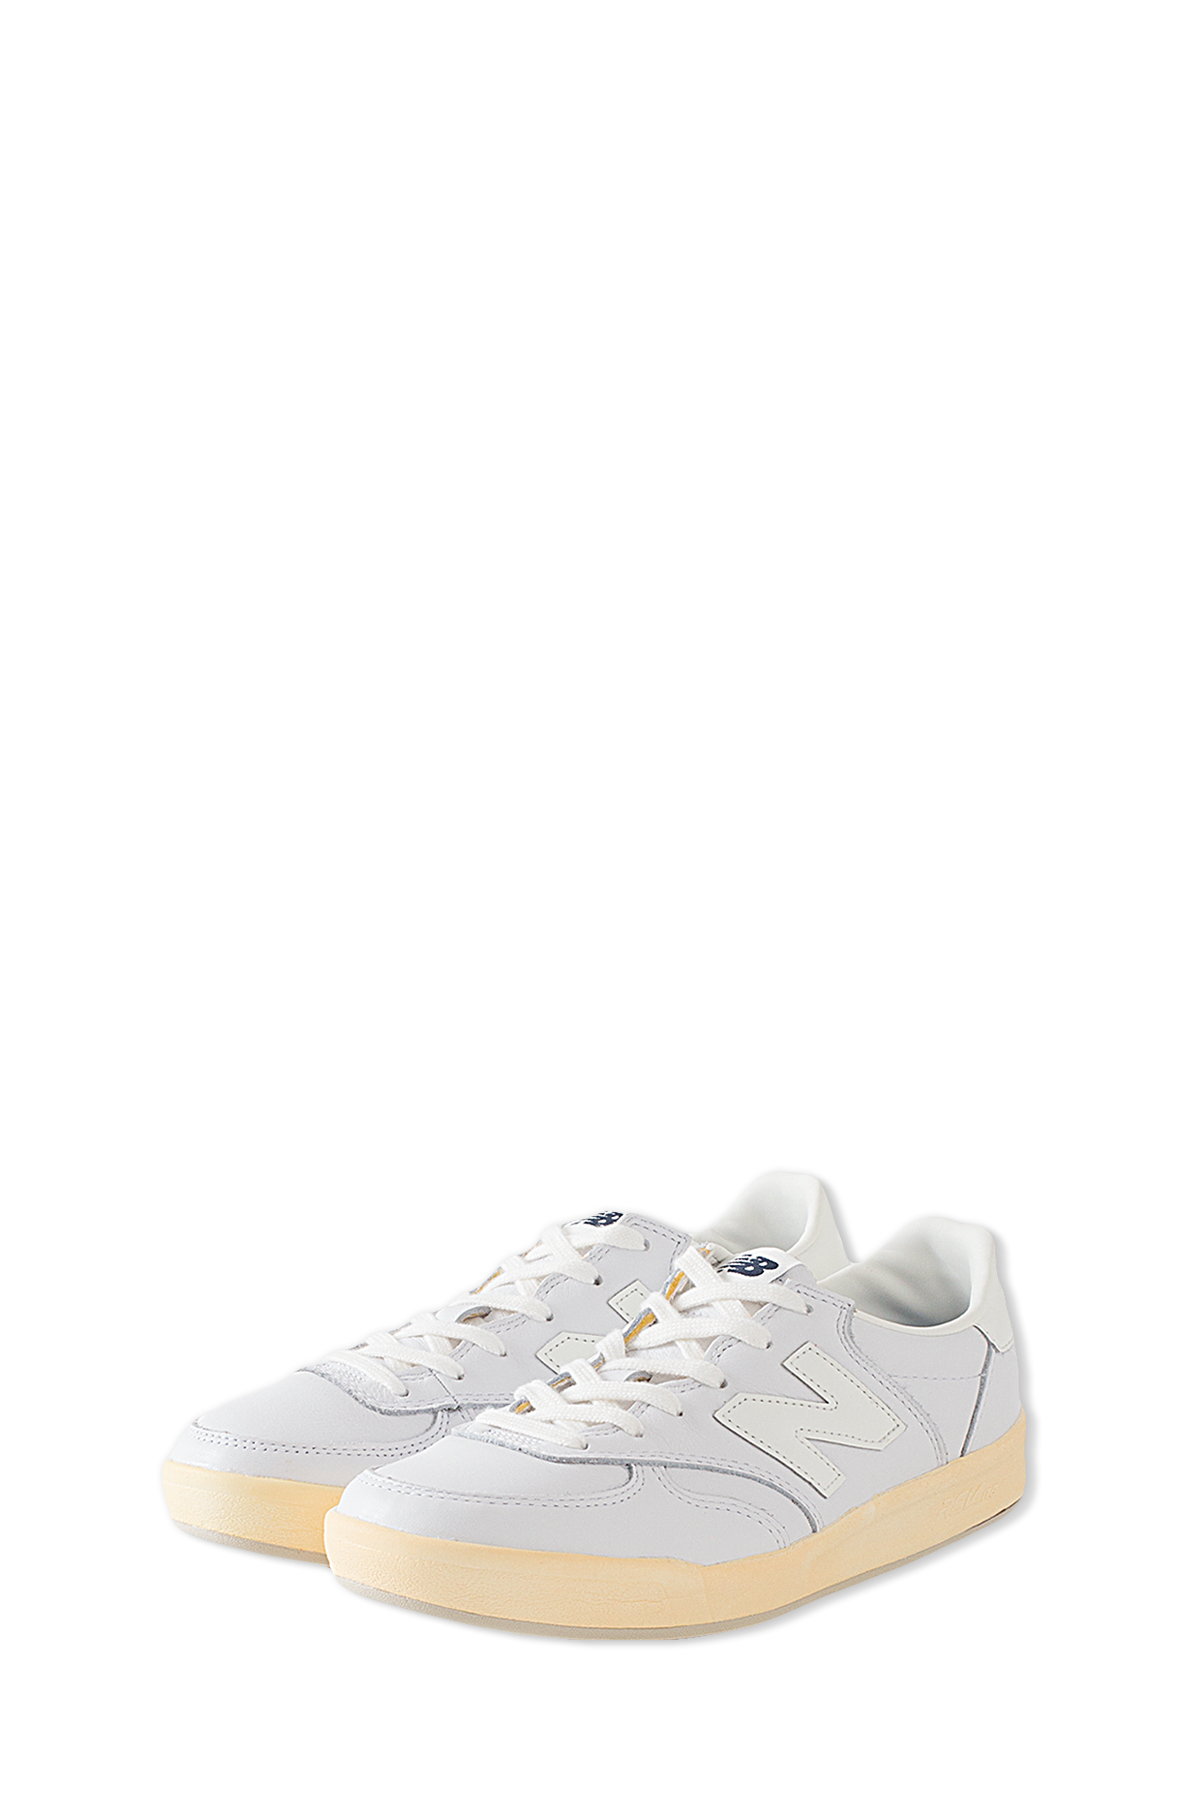 New Balance : CRT300CL (White)